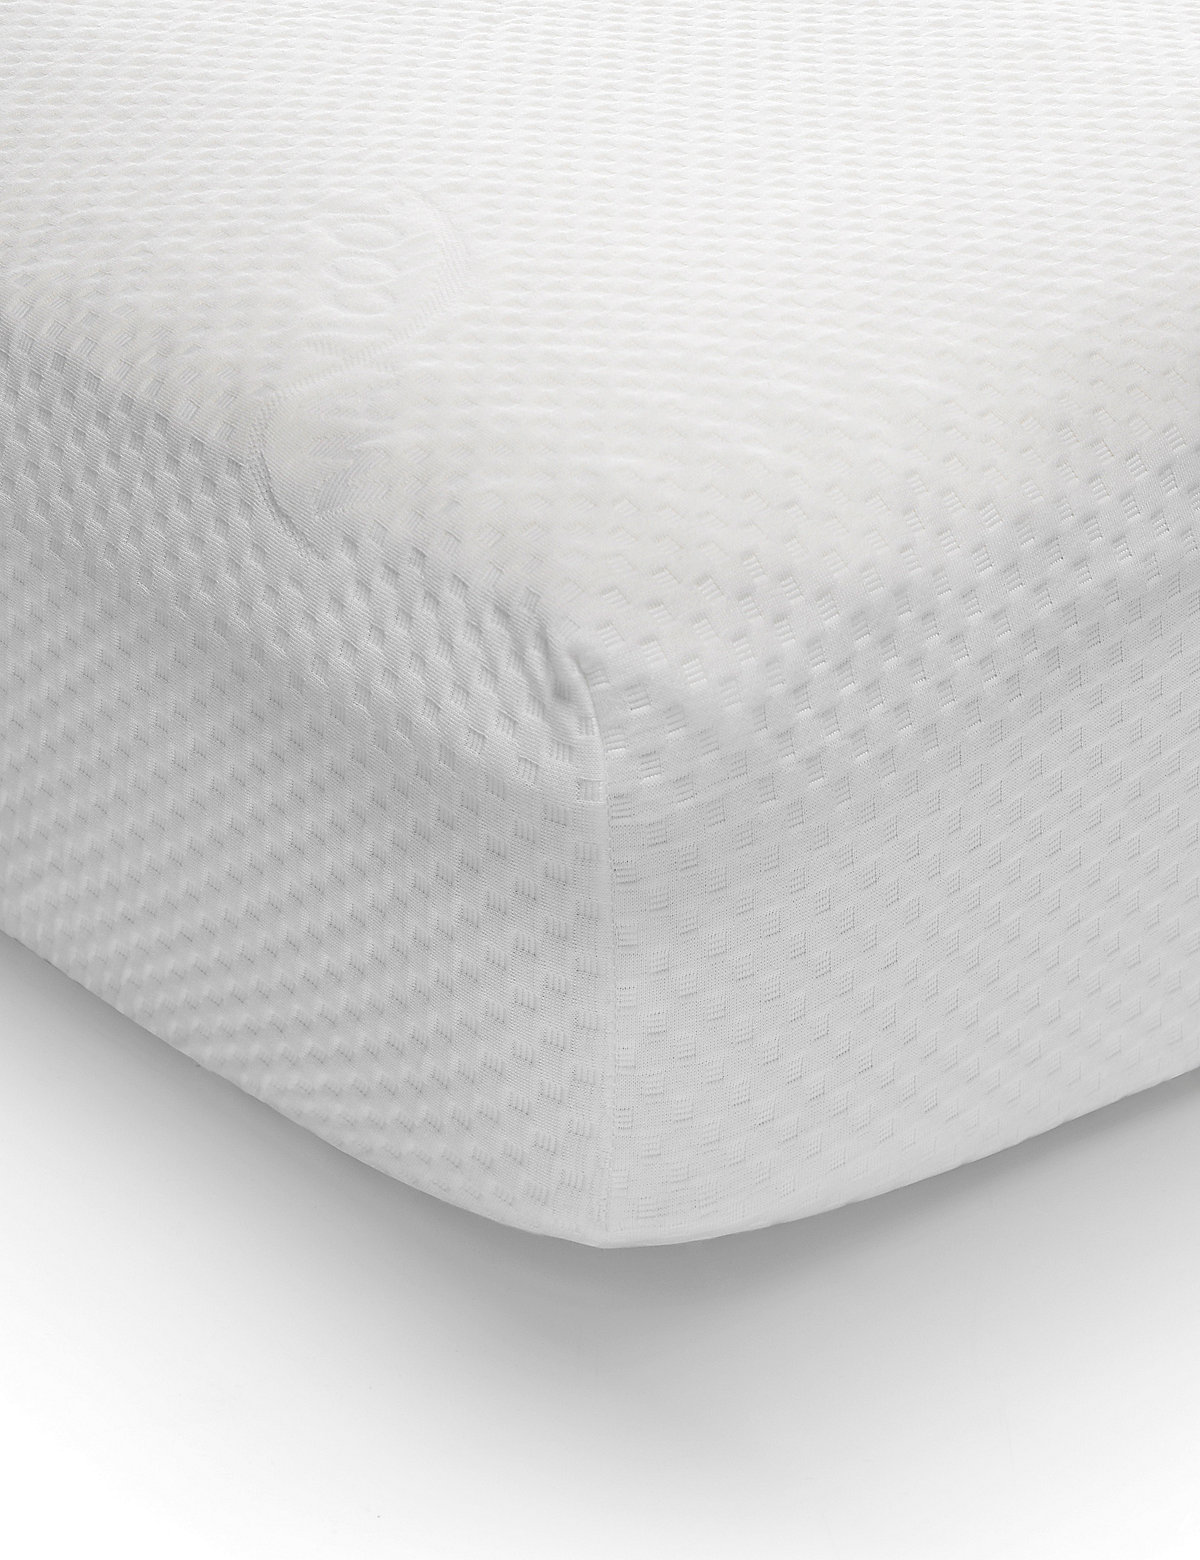 Foam mattress topper 355 value 129 for a king memory foam mattress bed mattress sale Mattress sale memory foam